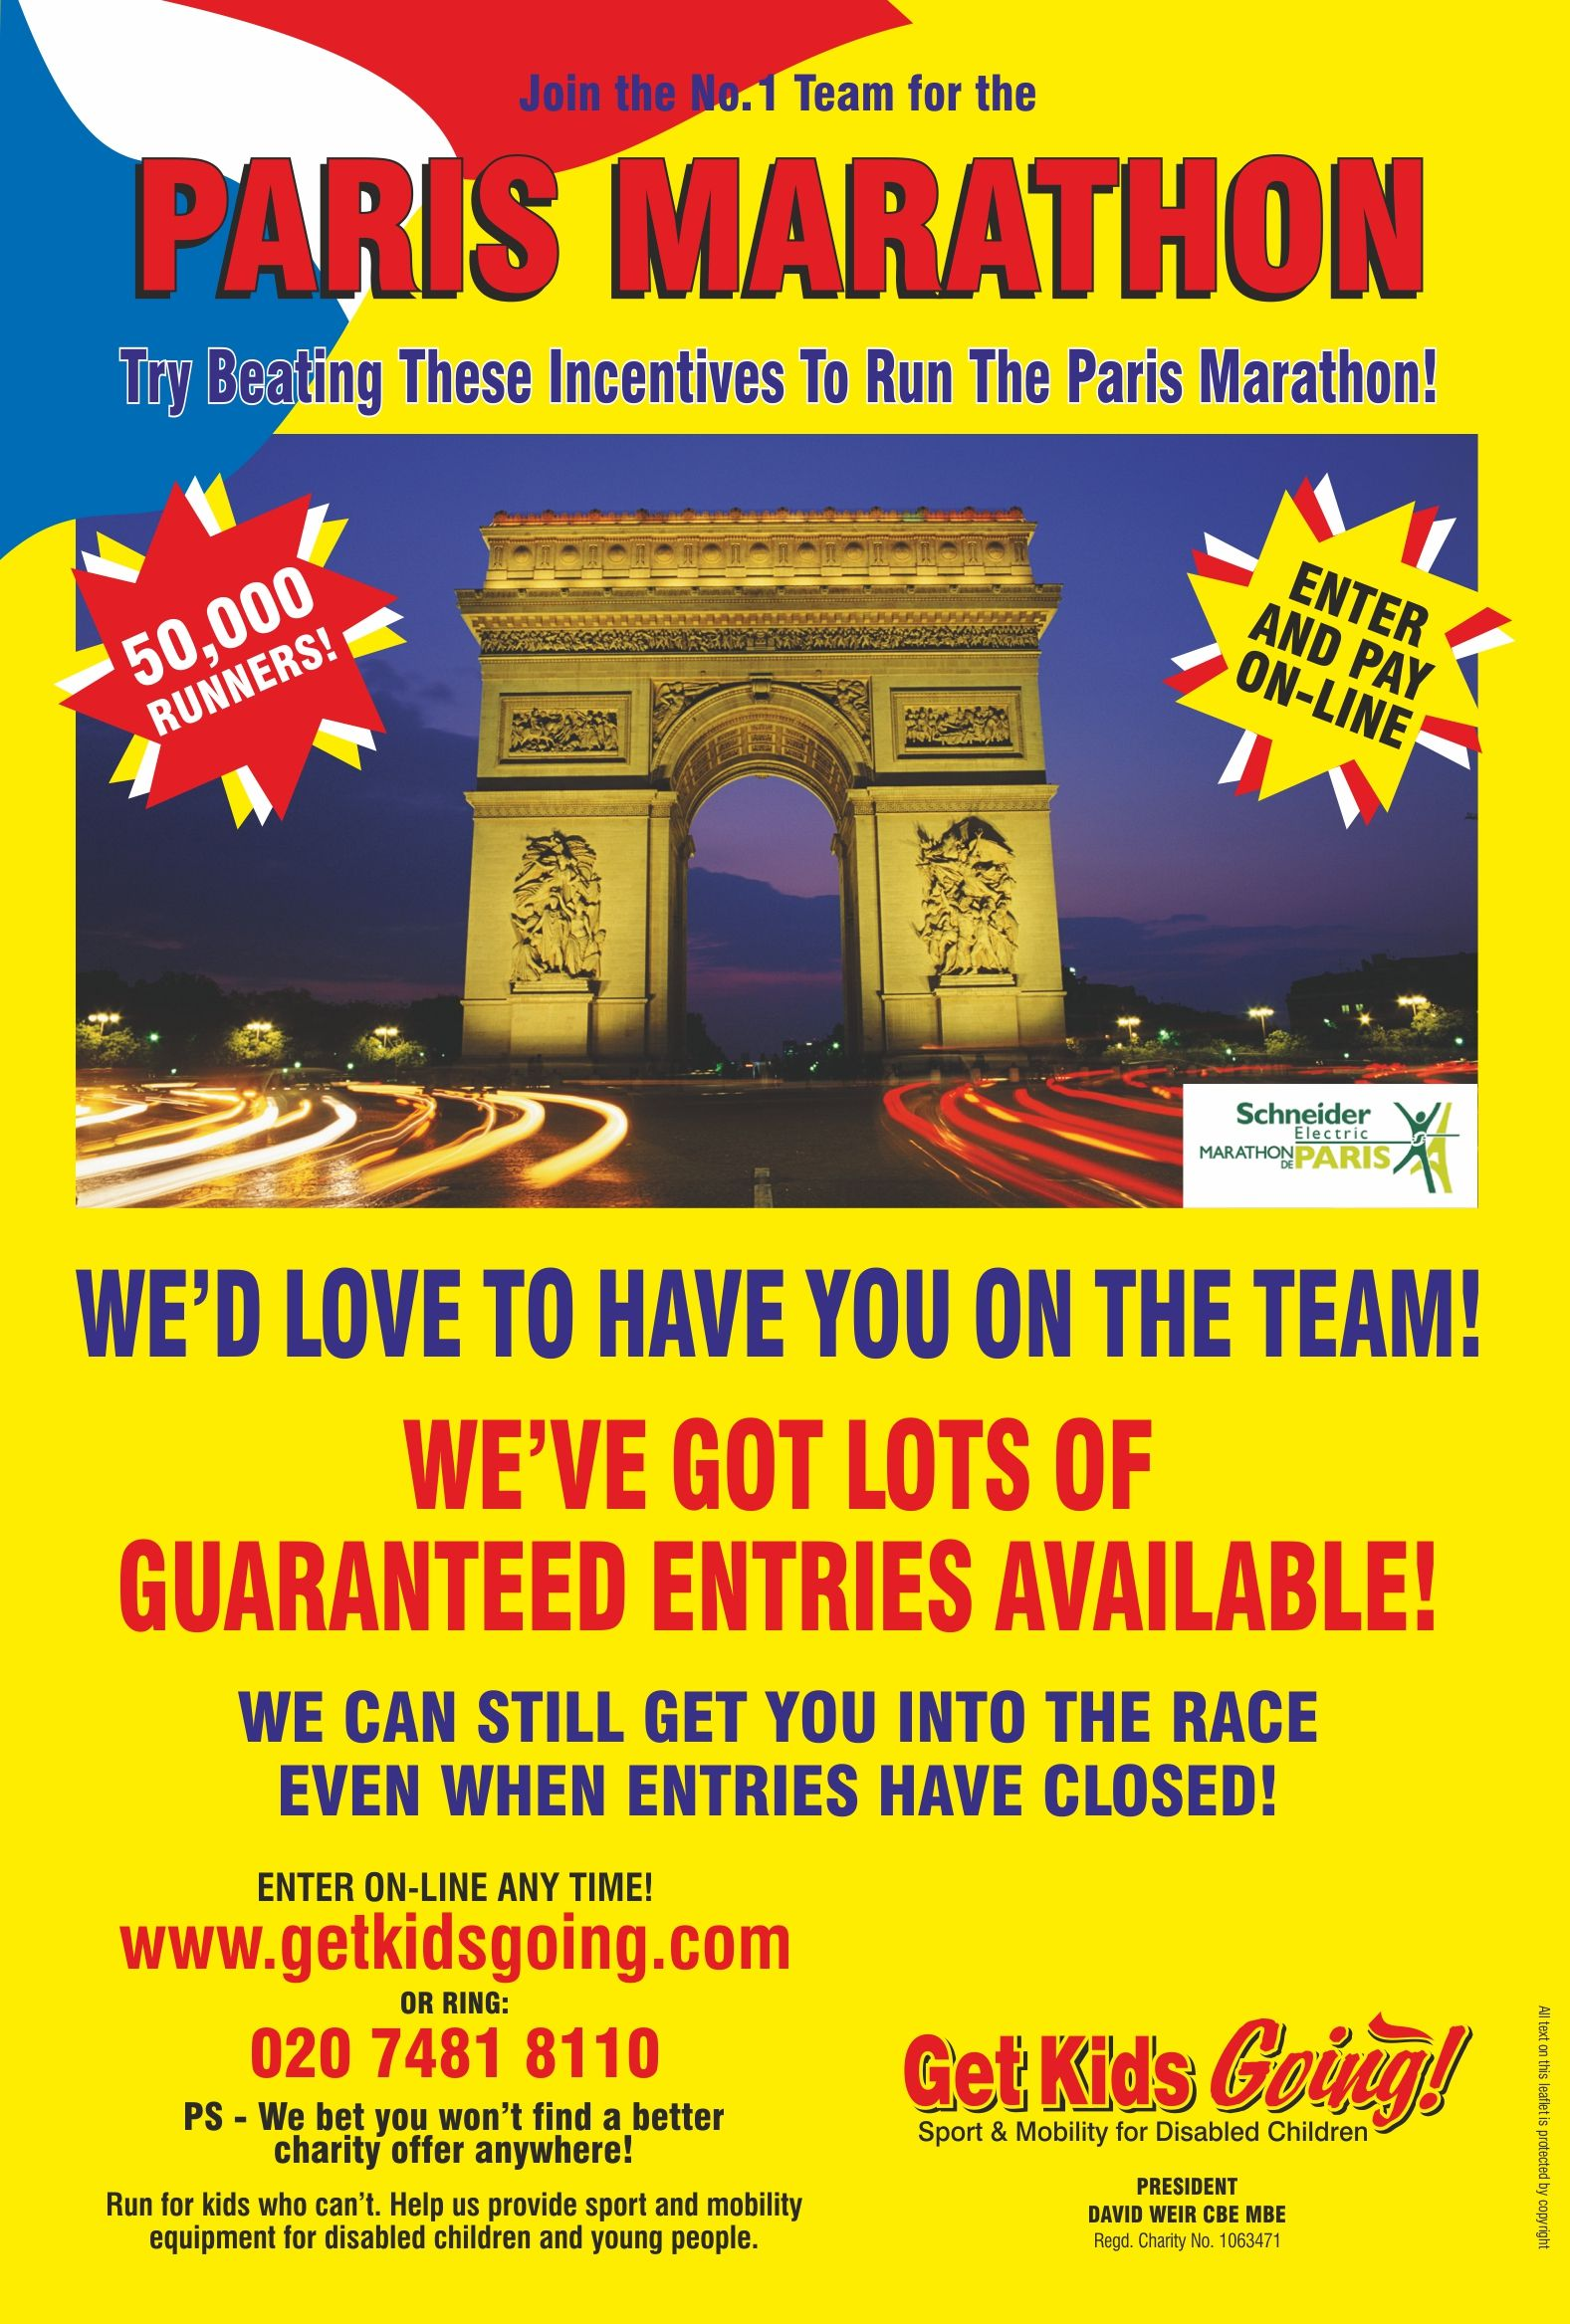 We have many guaranteed entry places available for the Paris Marathon 2016 just waiting to be filled!